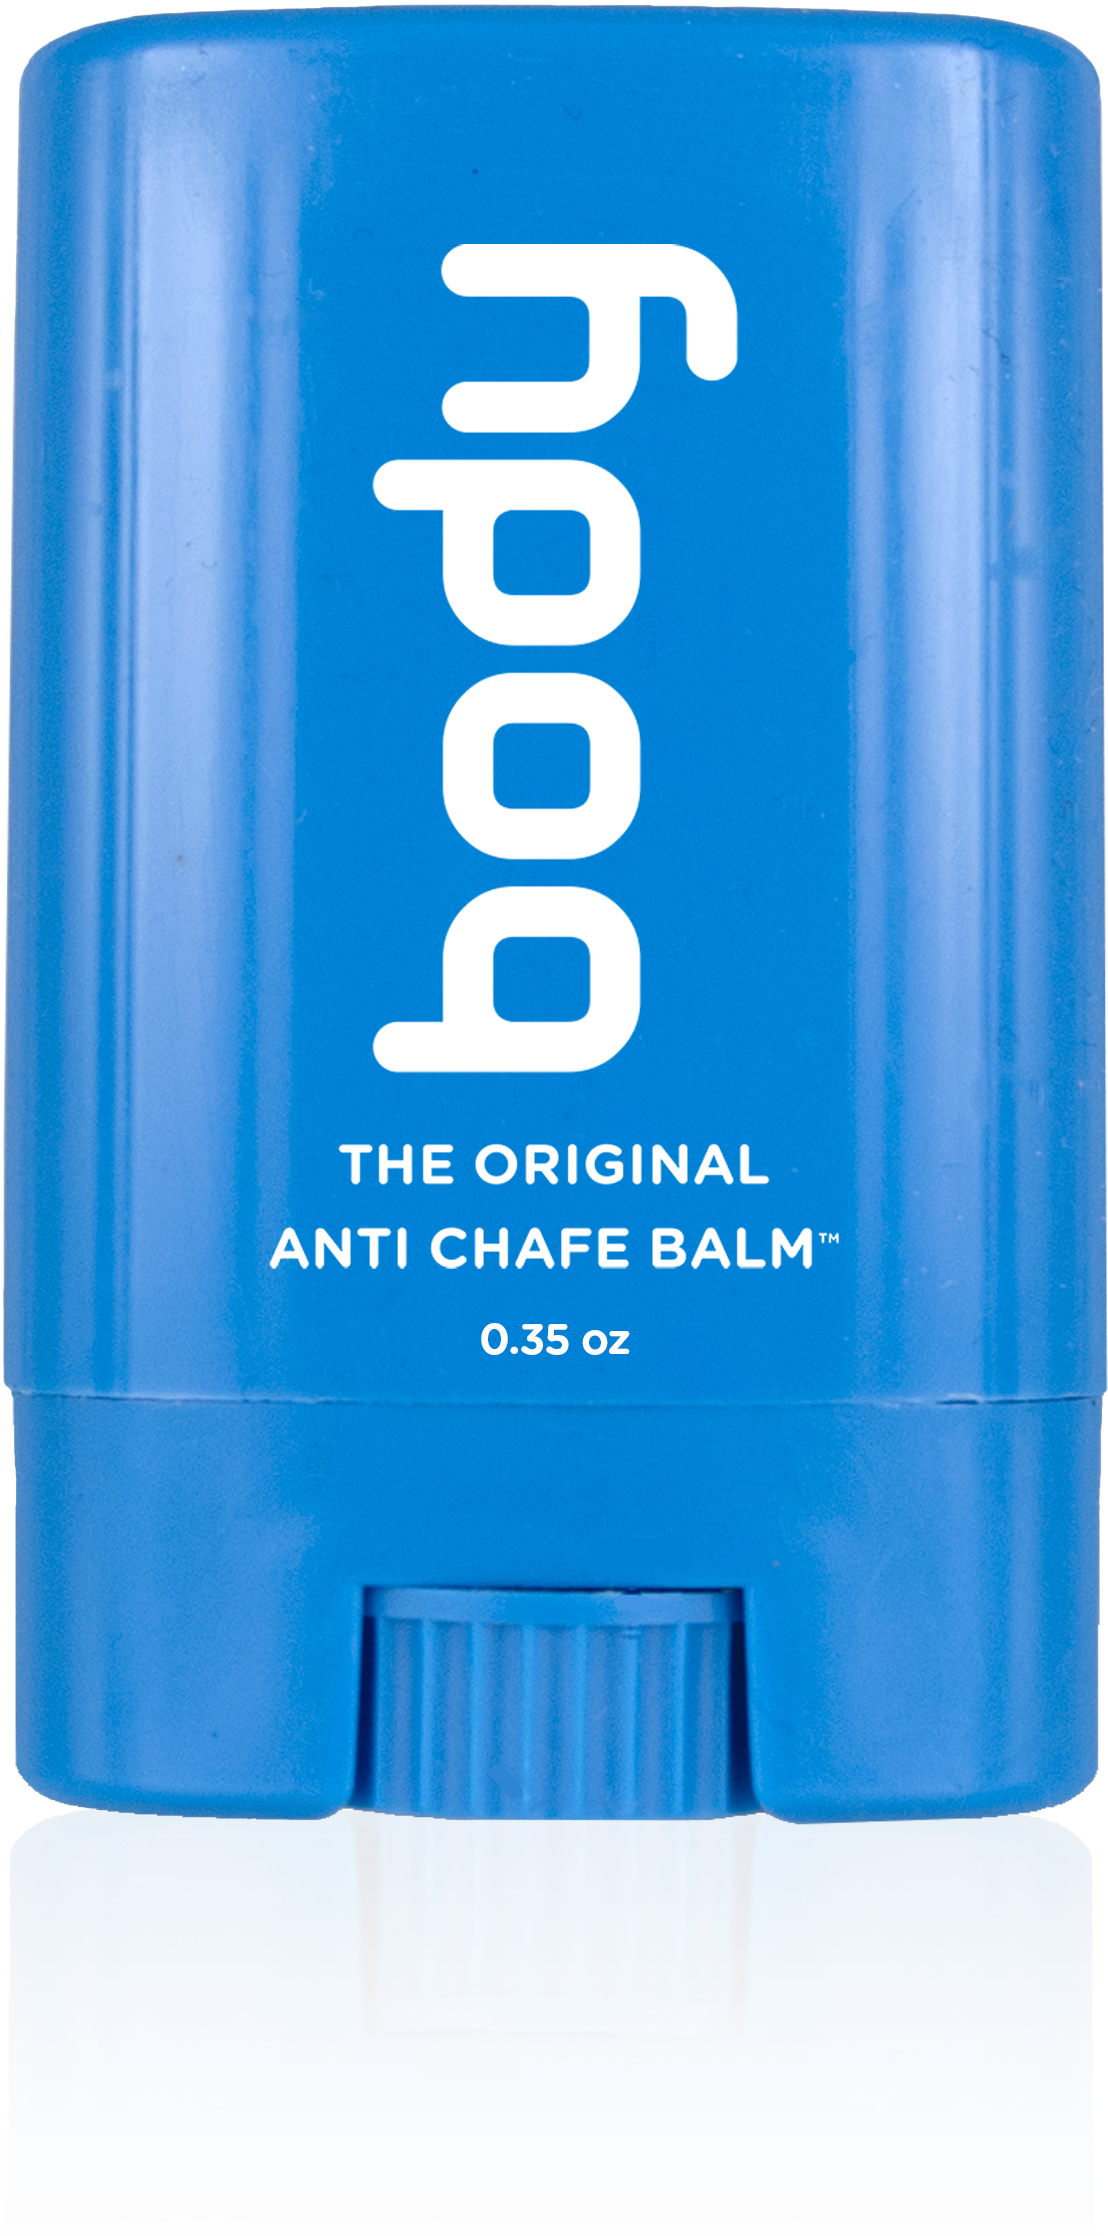 Body Glide - Body: The original anti chafing, anti blister balm